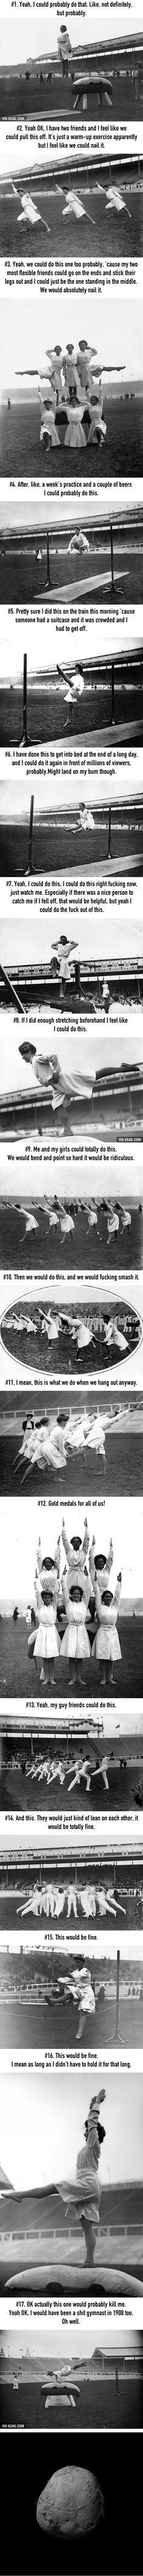 """17 Olympic Gymnasts From 1908 Who Will Make You Say """"Yeah, I Could Probably Do That"""" - 9GAG"""